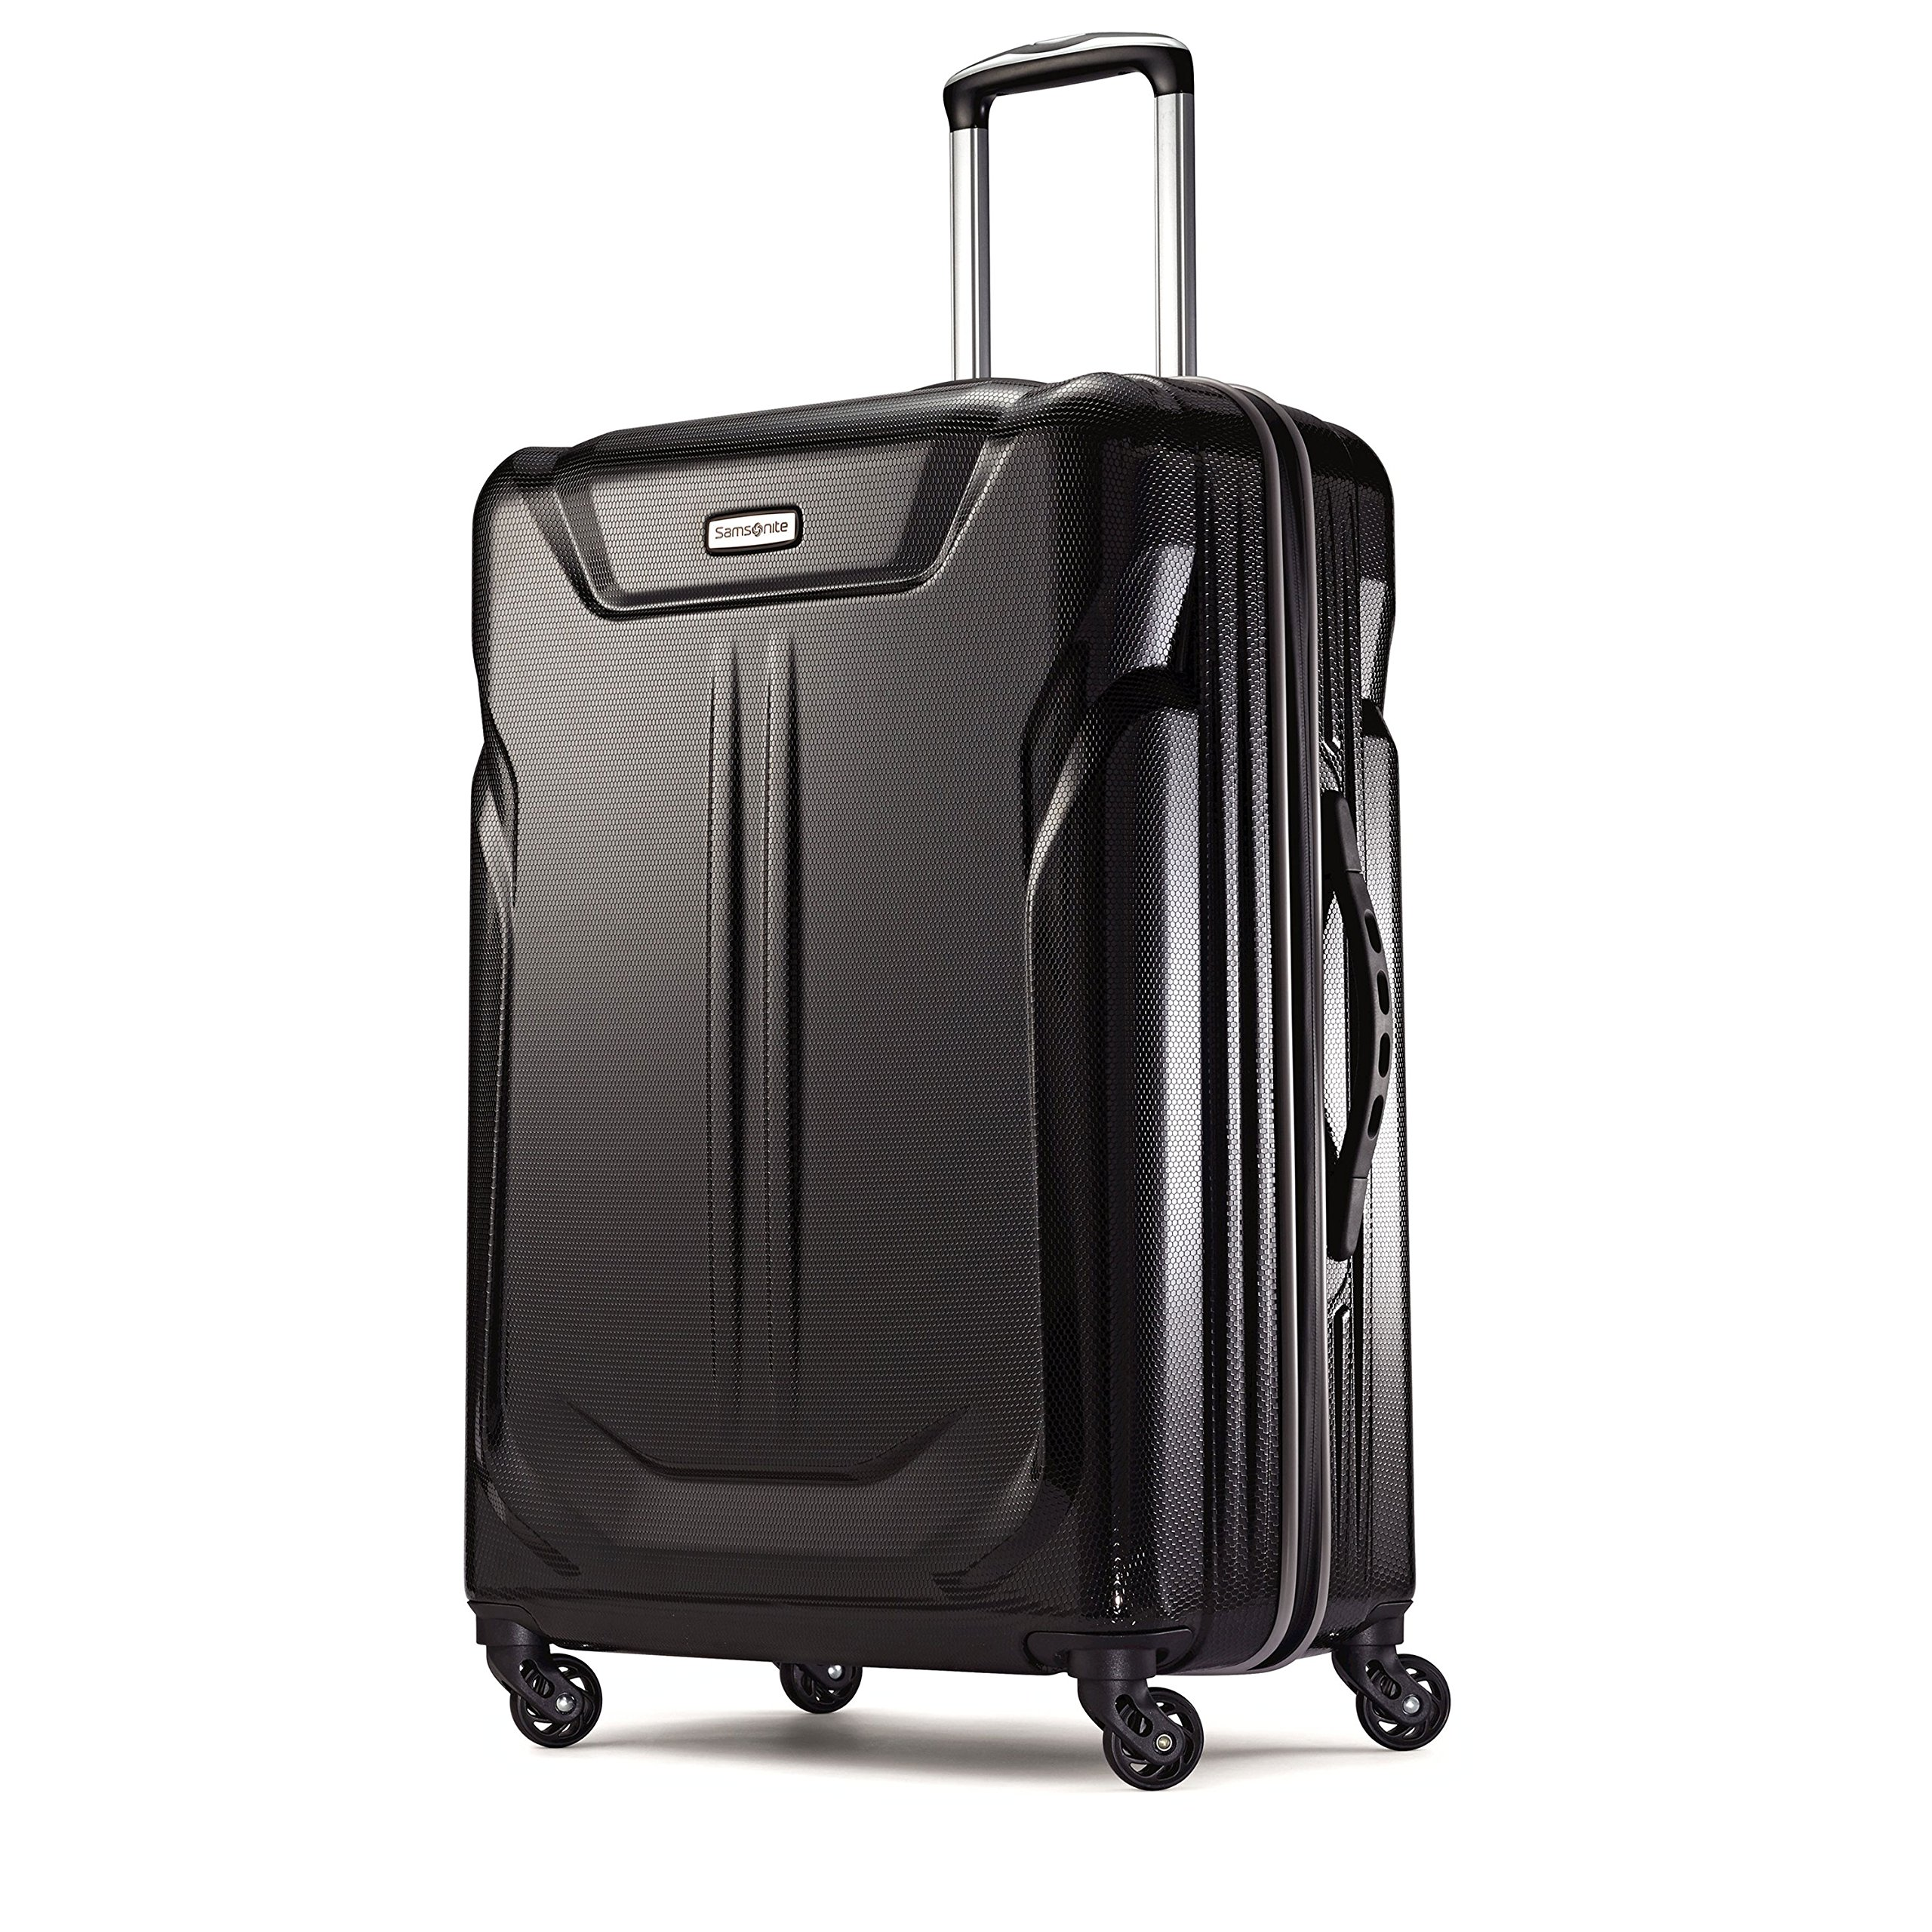 Samsonite Liftwo Hardside Spinner 29, Black, One Size